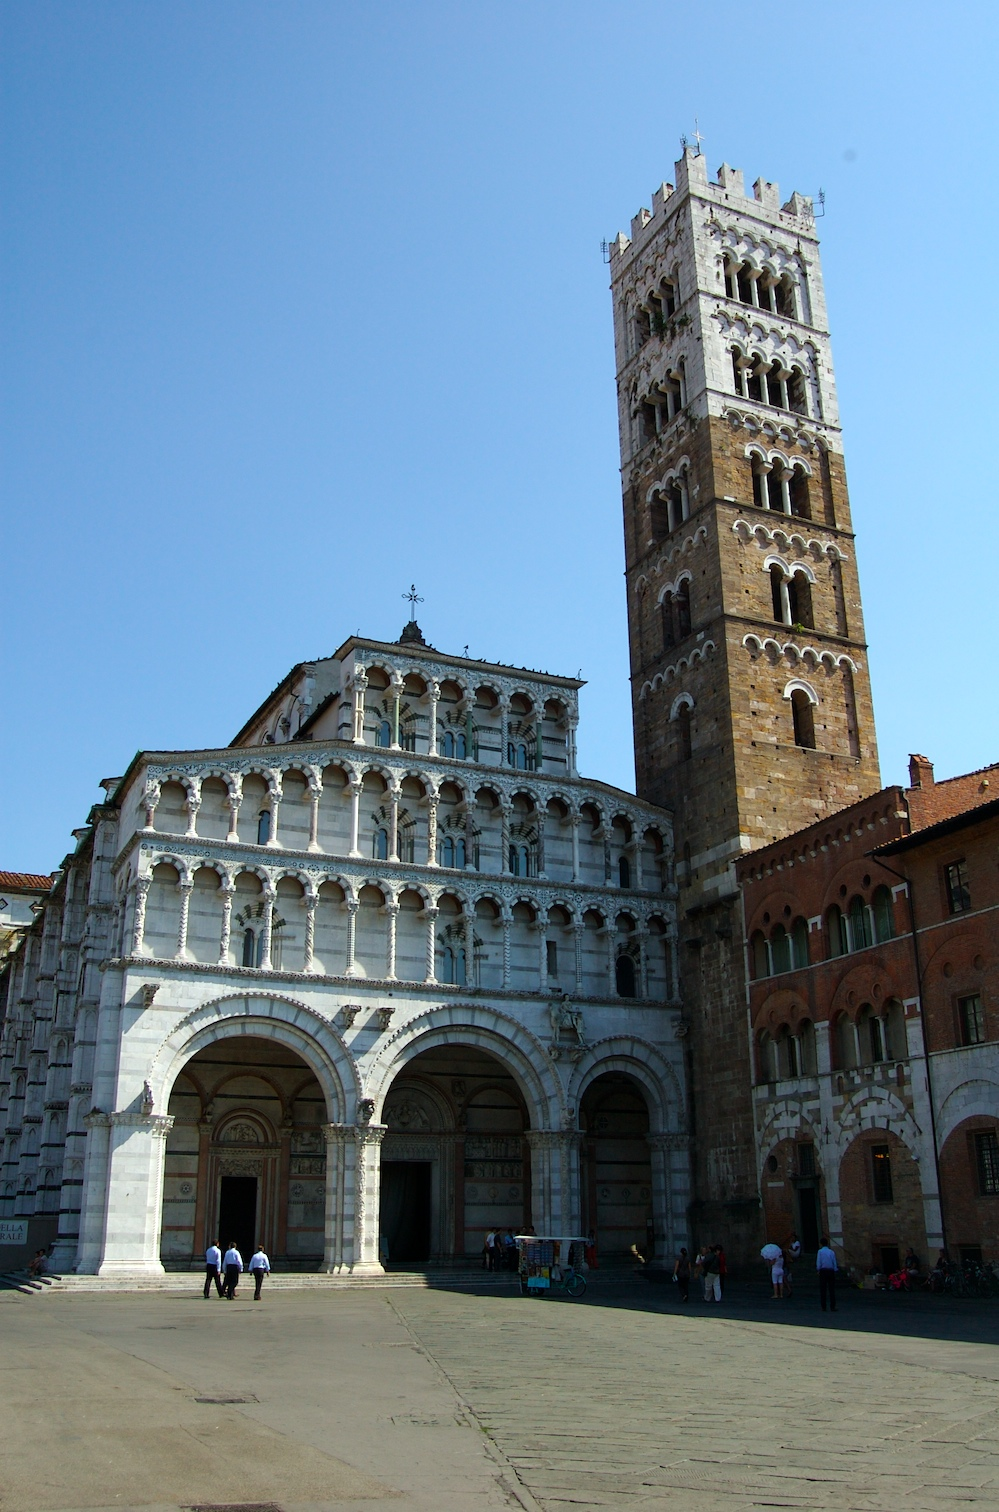 Roman Catholic Archdiocese of Lucca - Wikidata